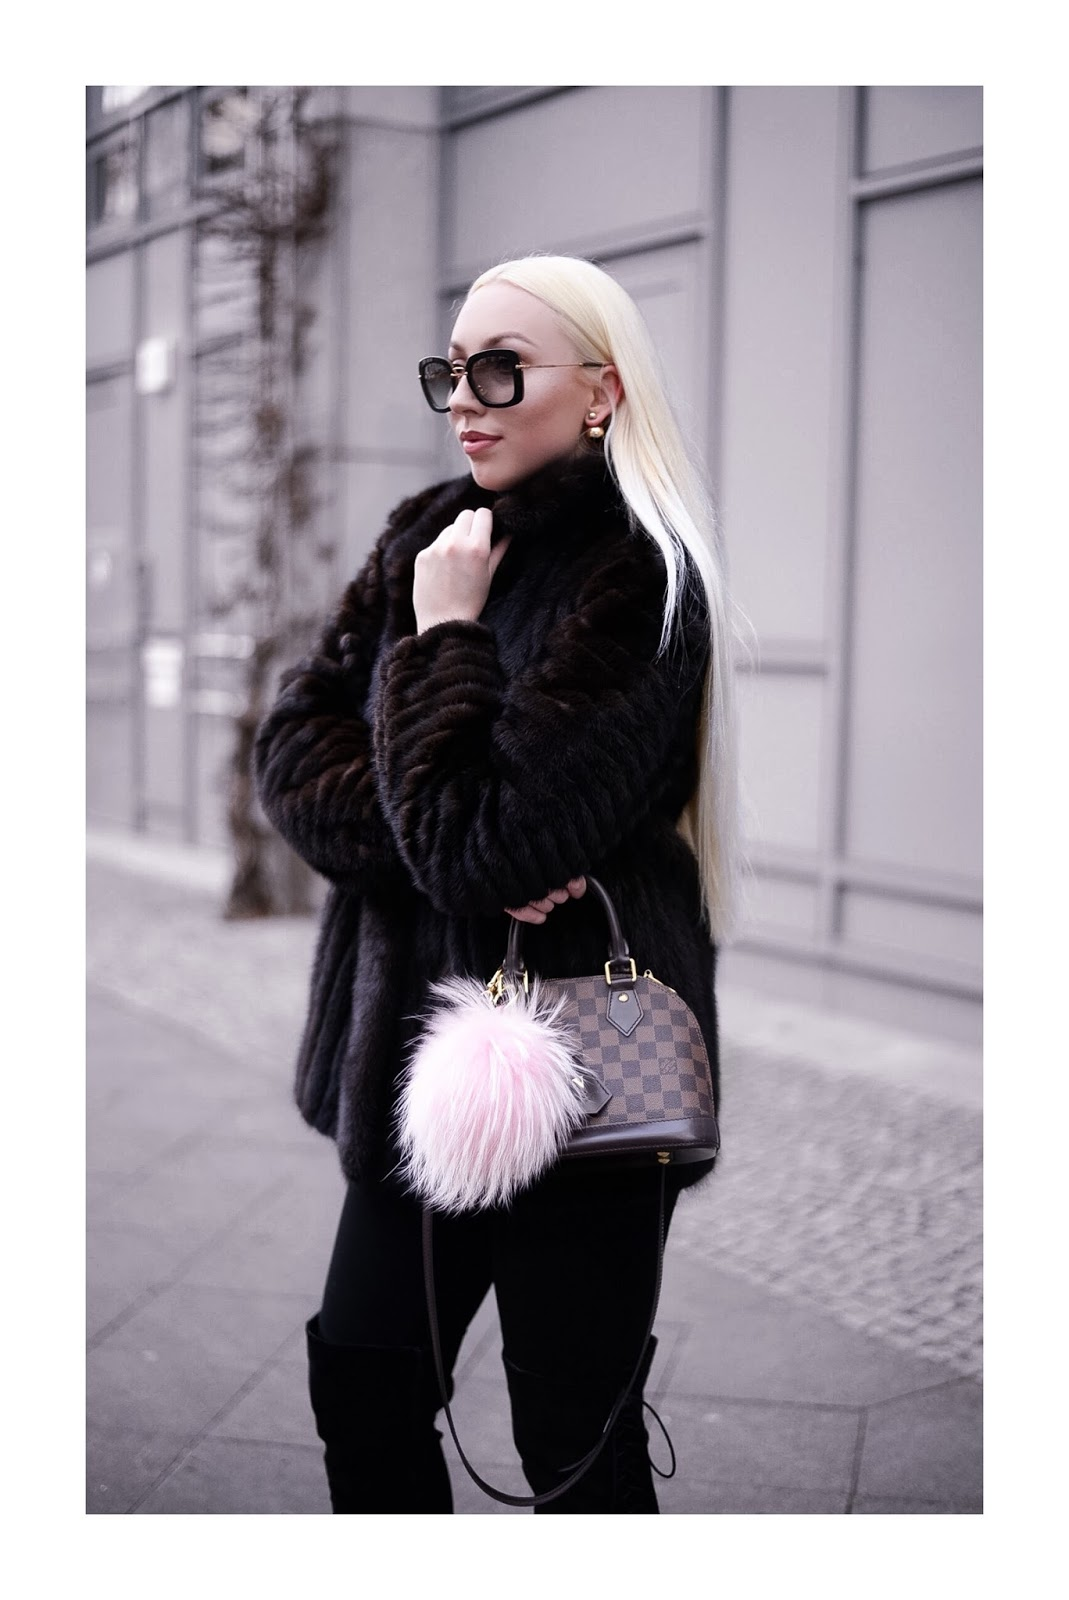 fur coat_pelz jacke_date night outfit